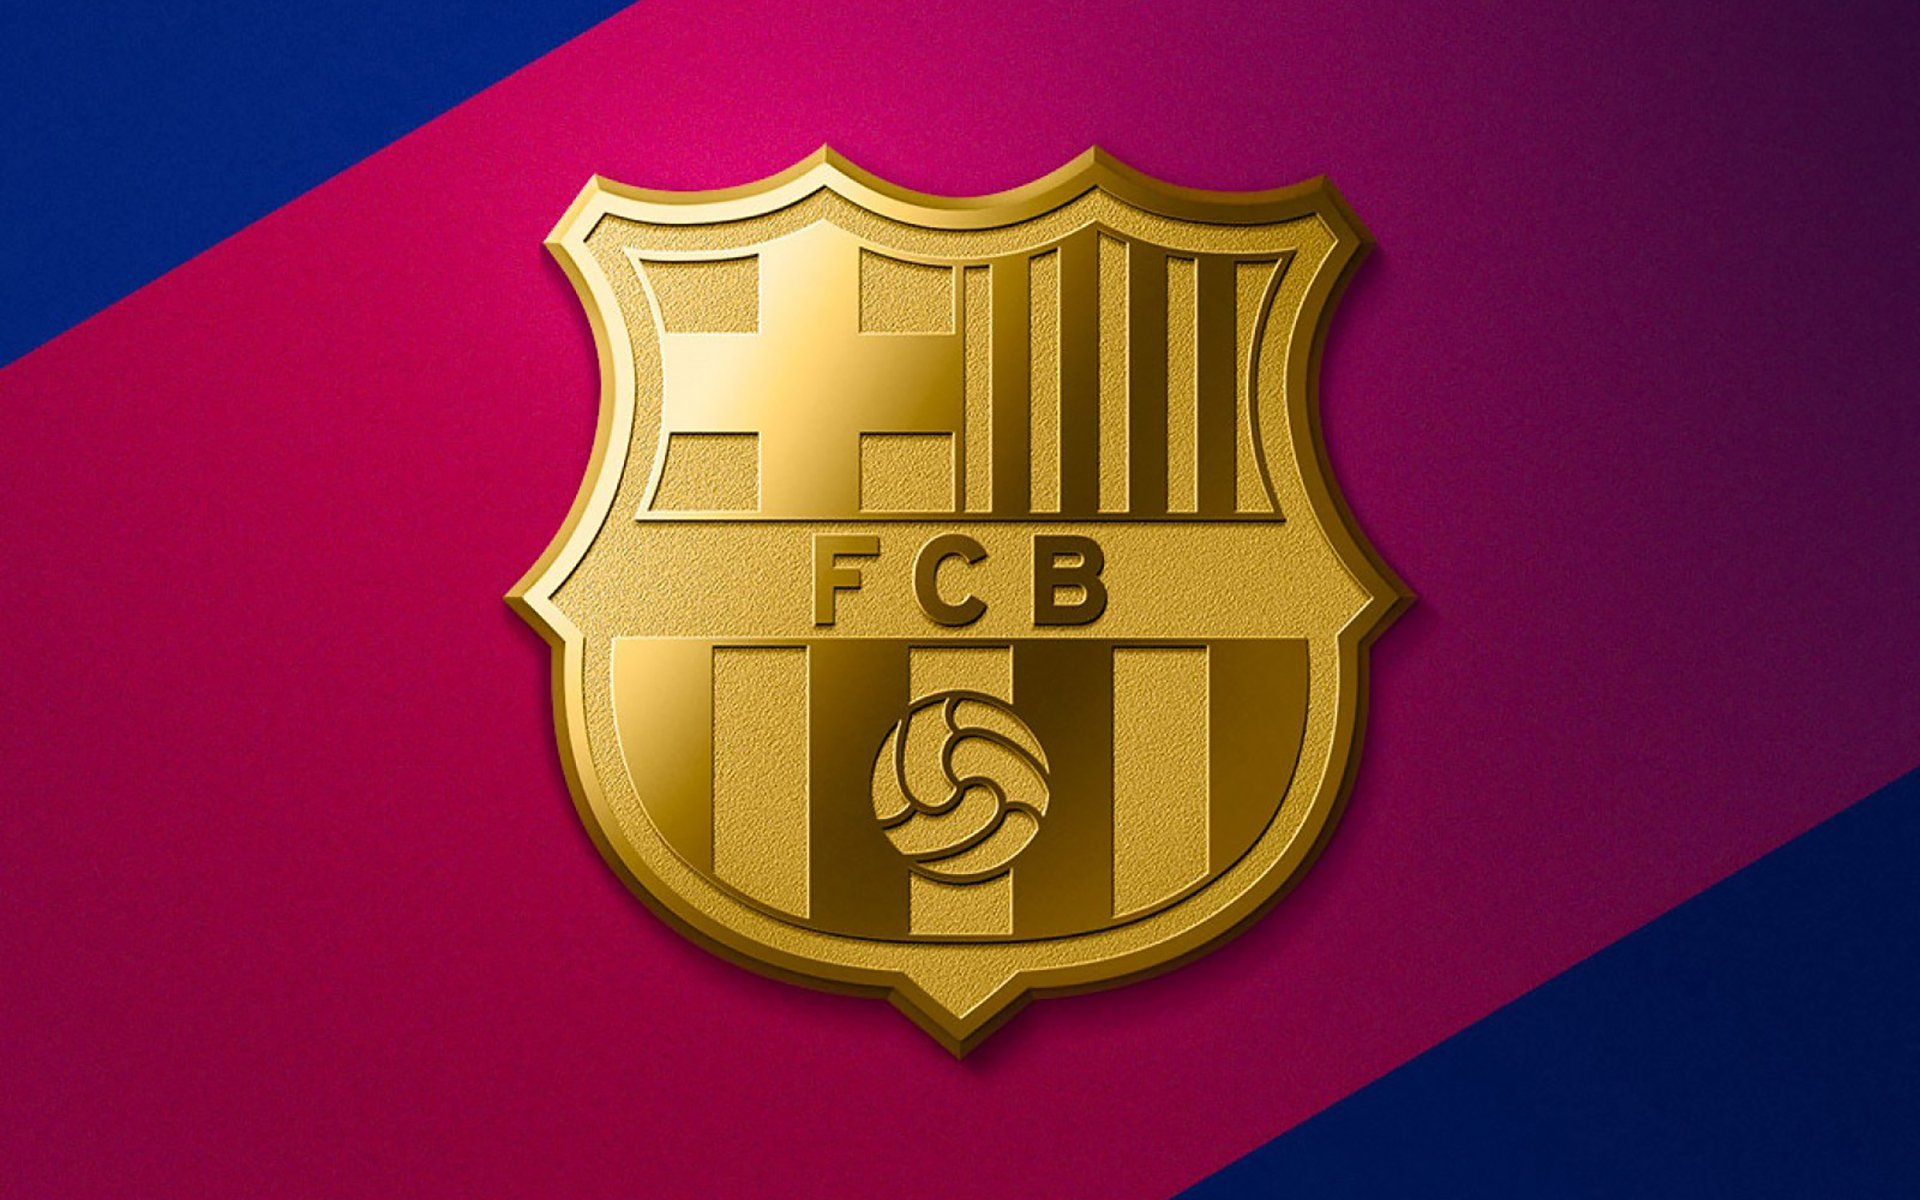 Barca Logo Hd Wallpaper Background Image 1920x1200 Id 969513 Wallpaper Abyss